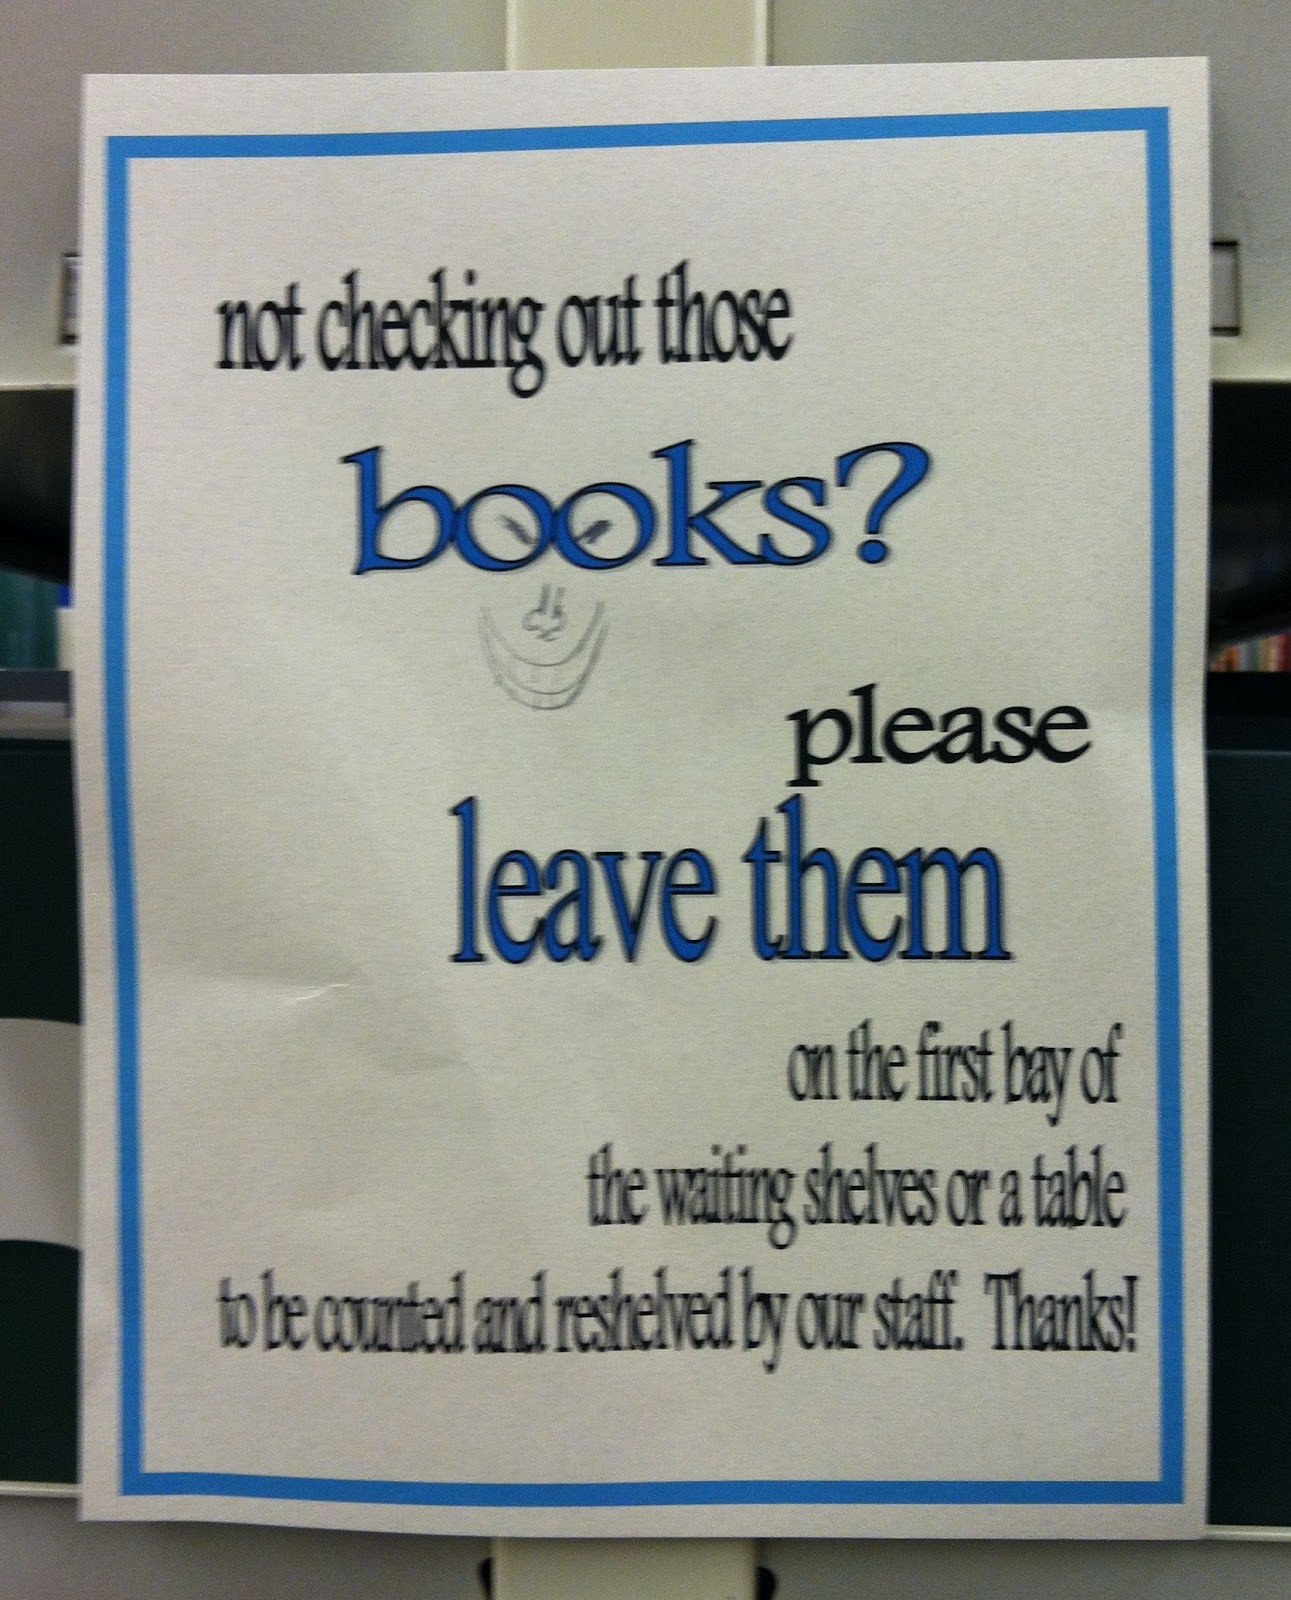 Books signage photo